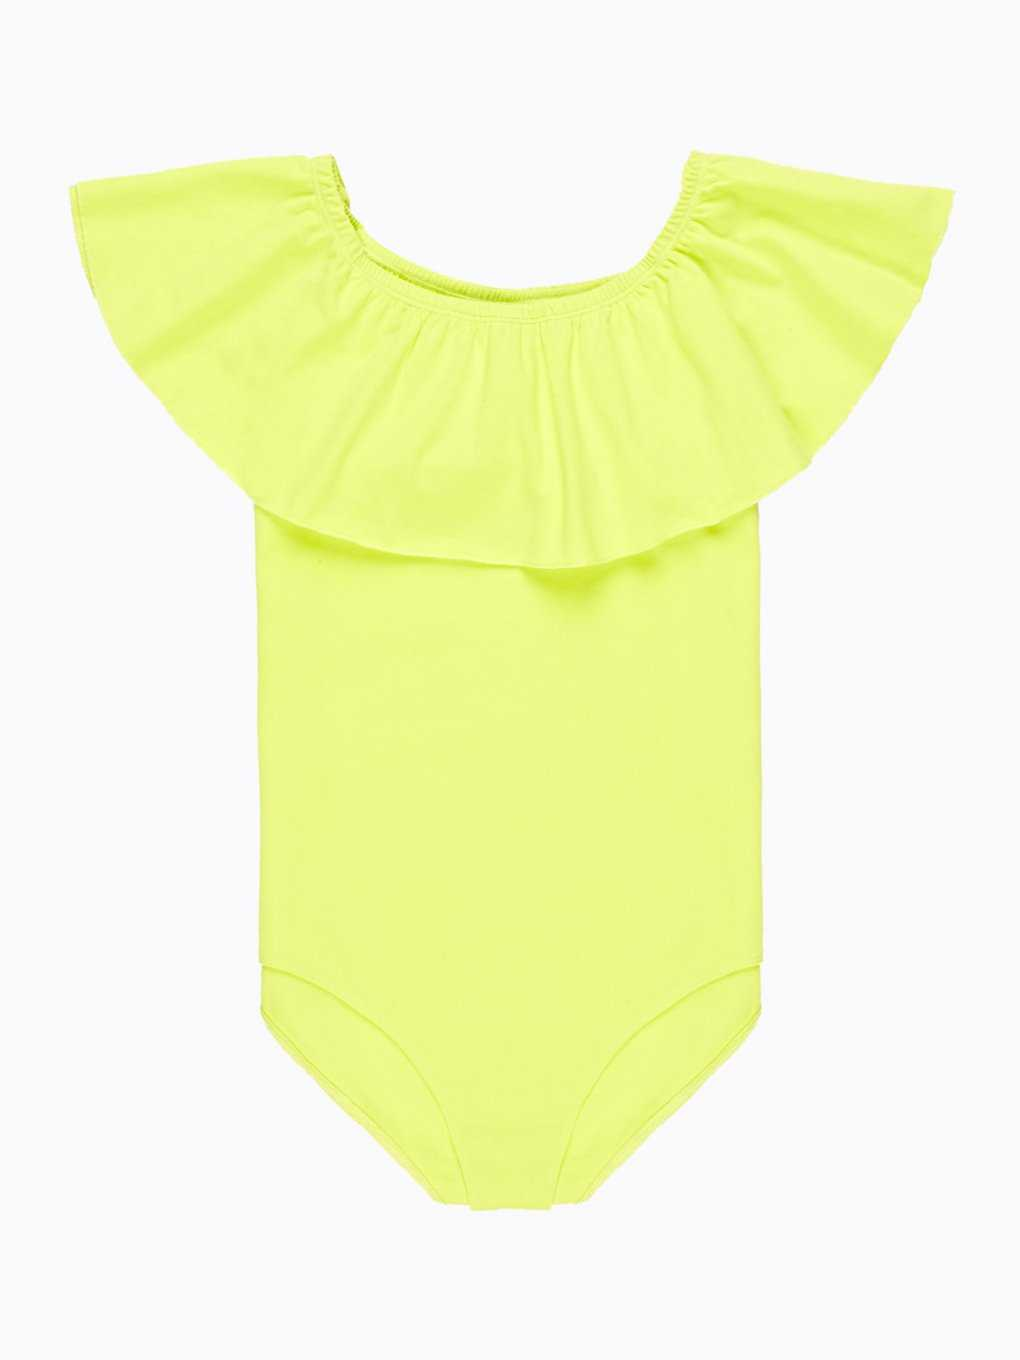 Off-the-shoulder bodysuit with ruffle